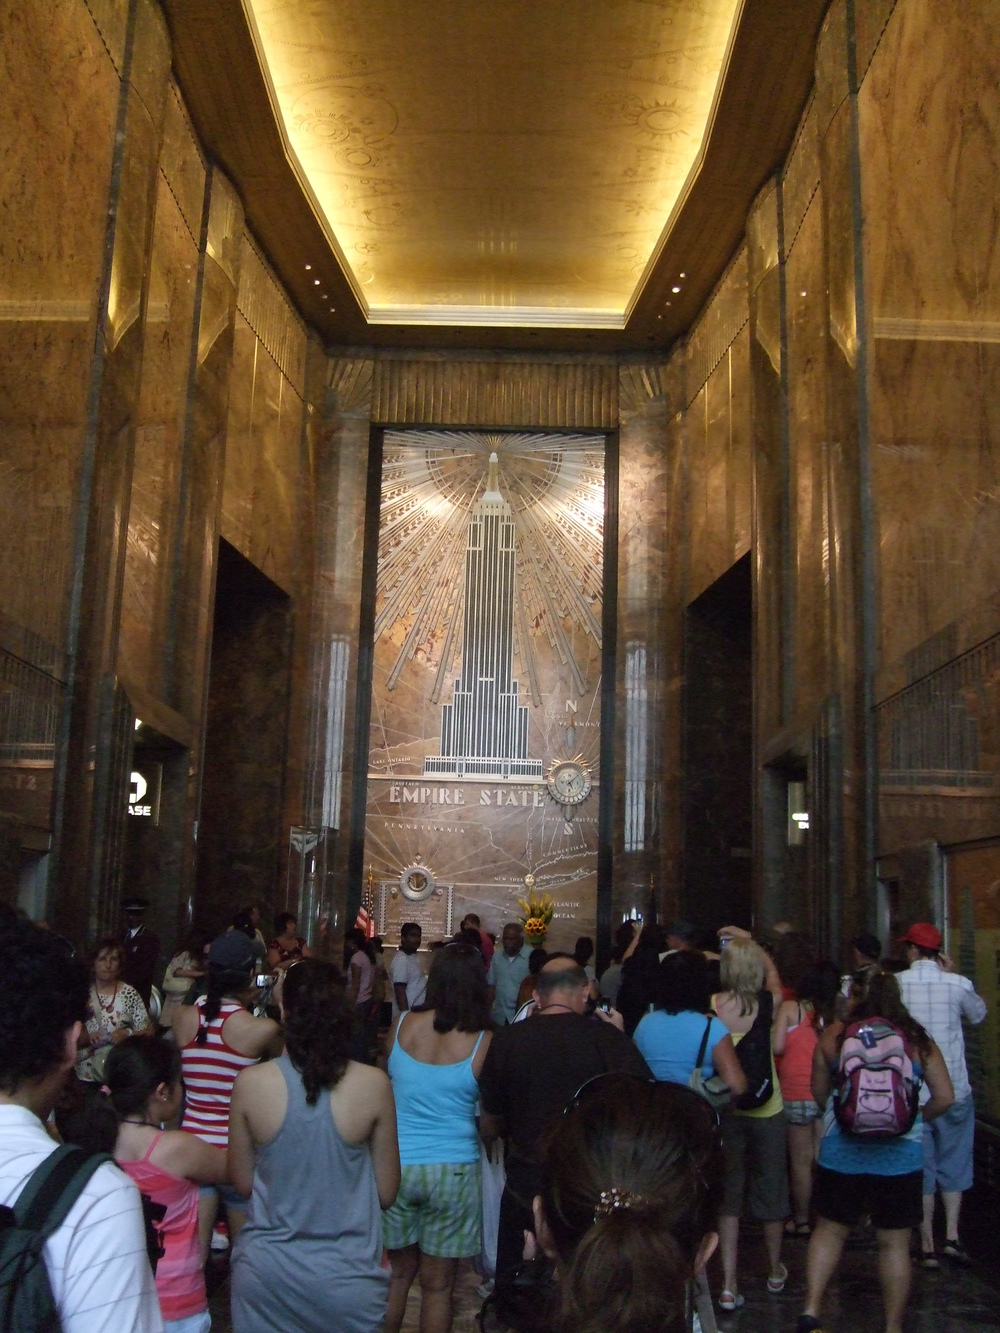 A crowd scrambles to join the queue for the queue in the Empire State building.